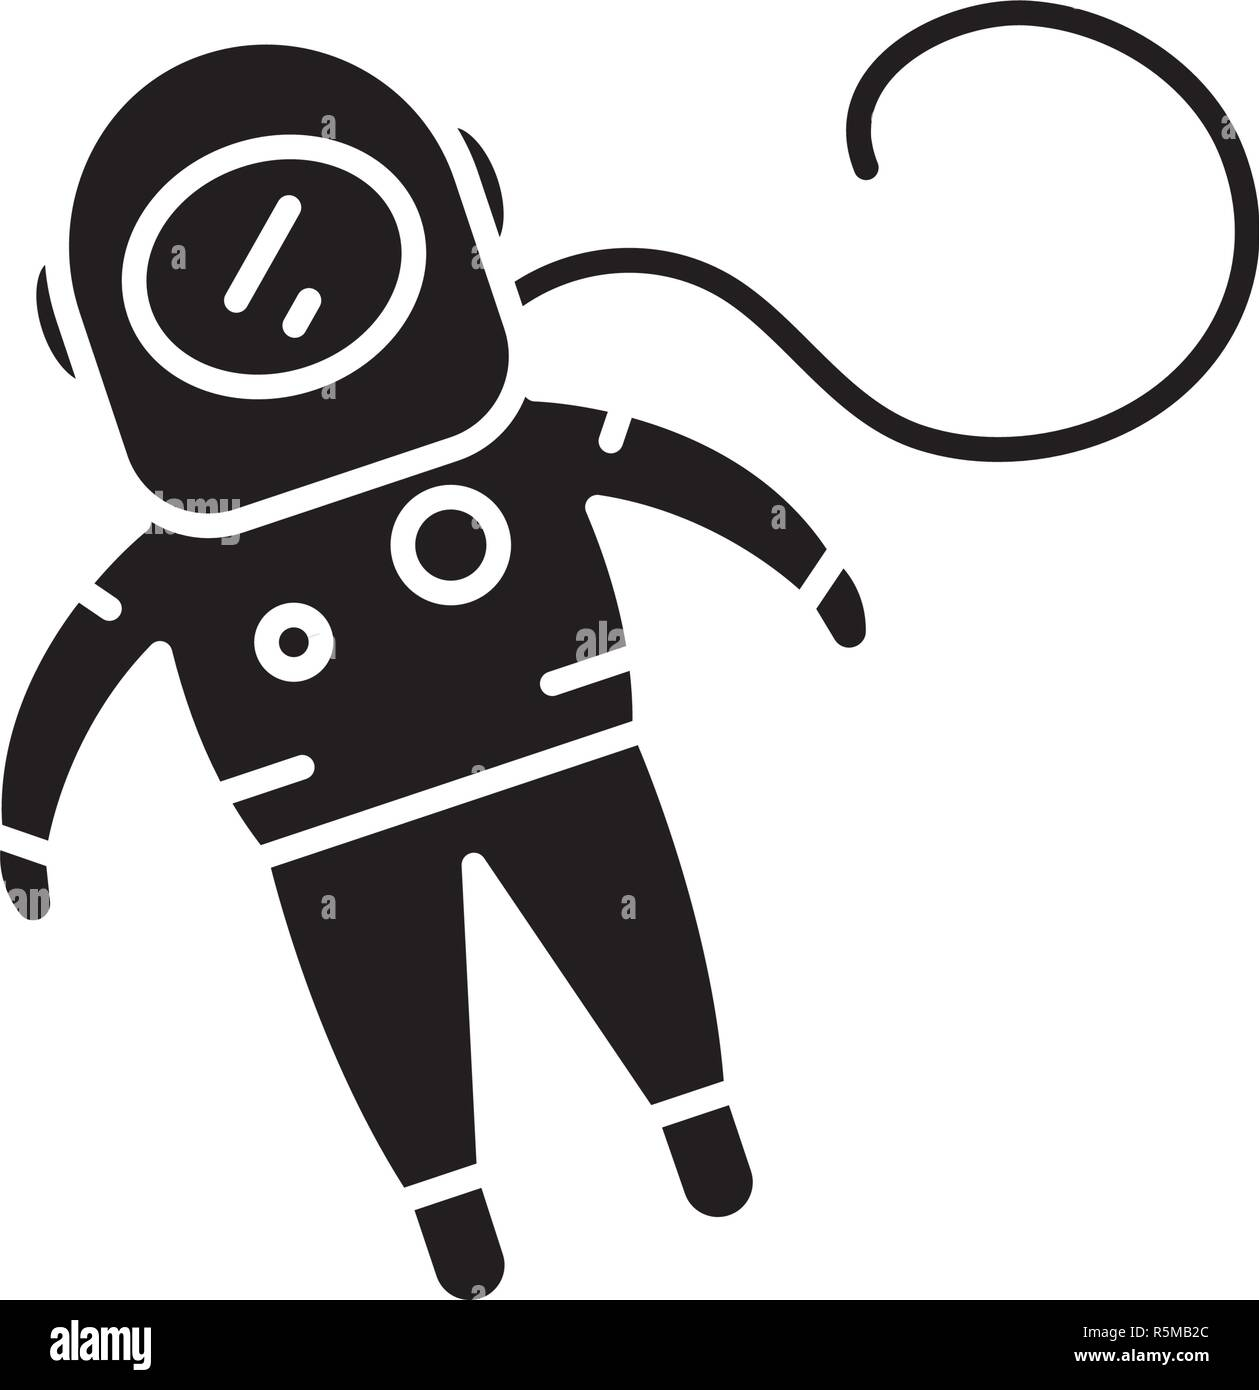 Cosmonaut black icon, vector sign on isolated background. Cosmonaut concept symbol, illustration  - Stock Image